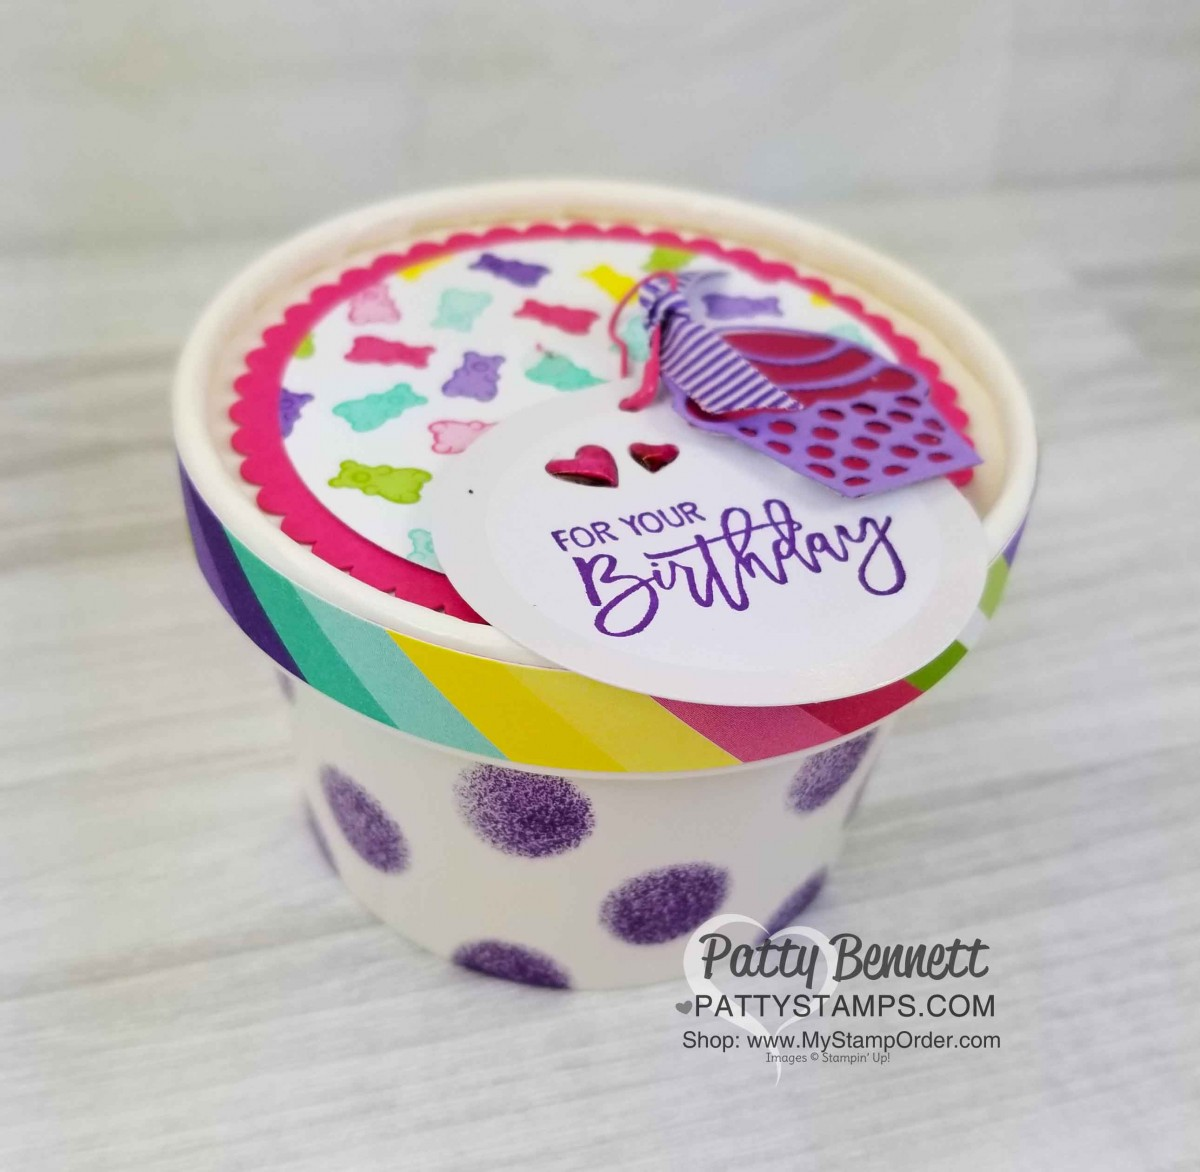 Sweet Cup Birthday Party Favor Idea